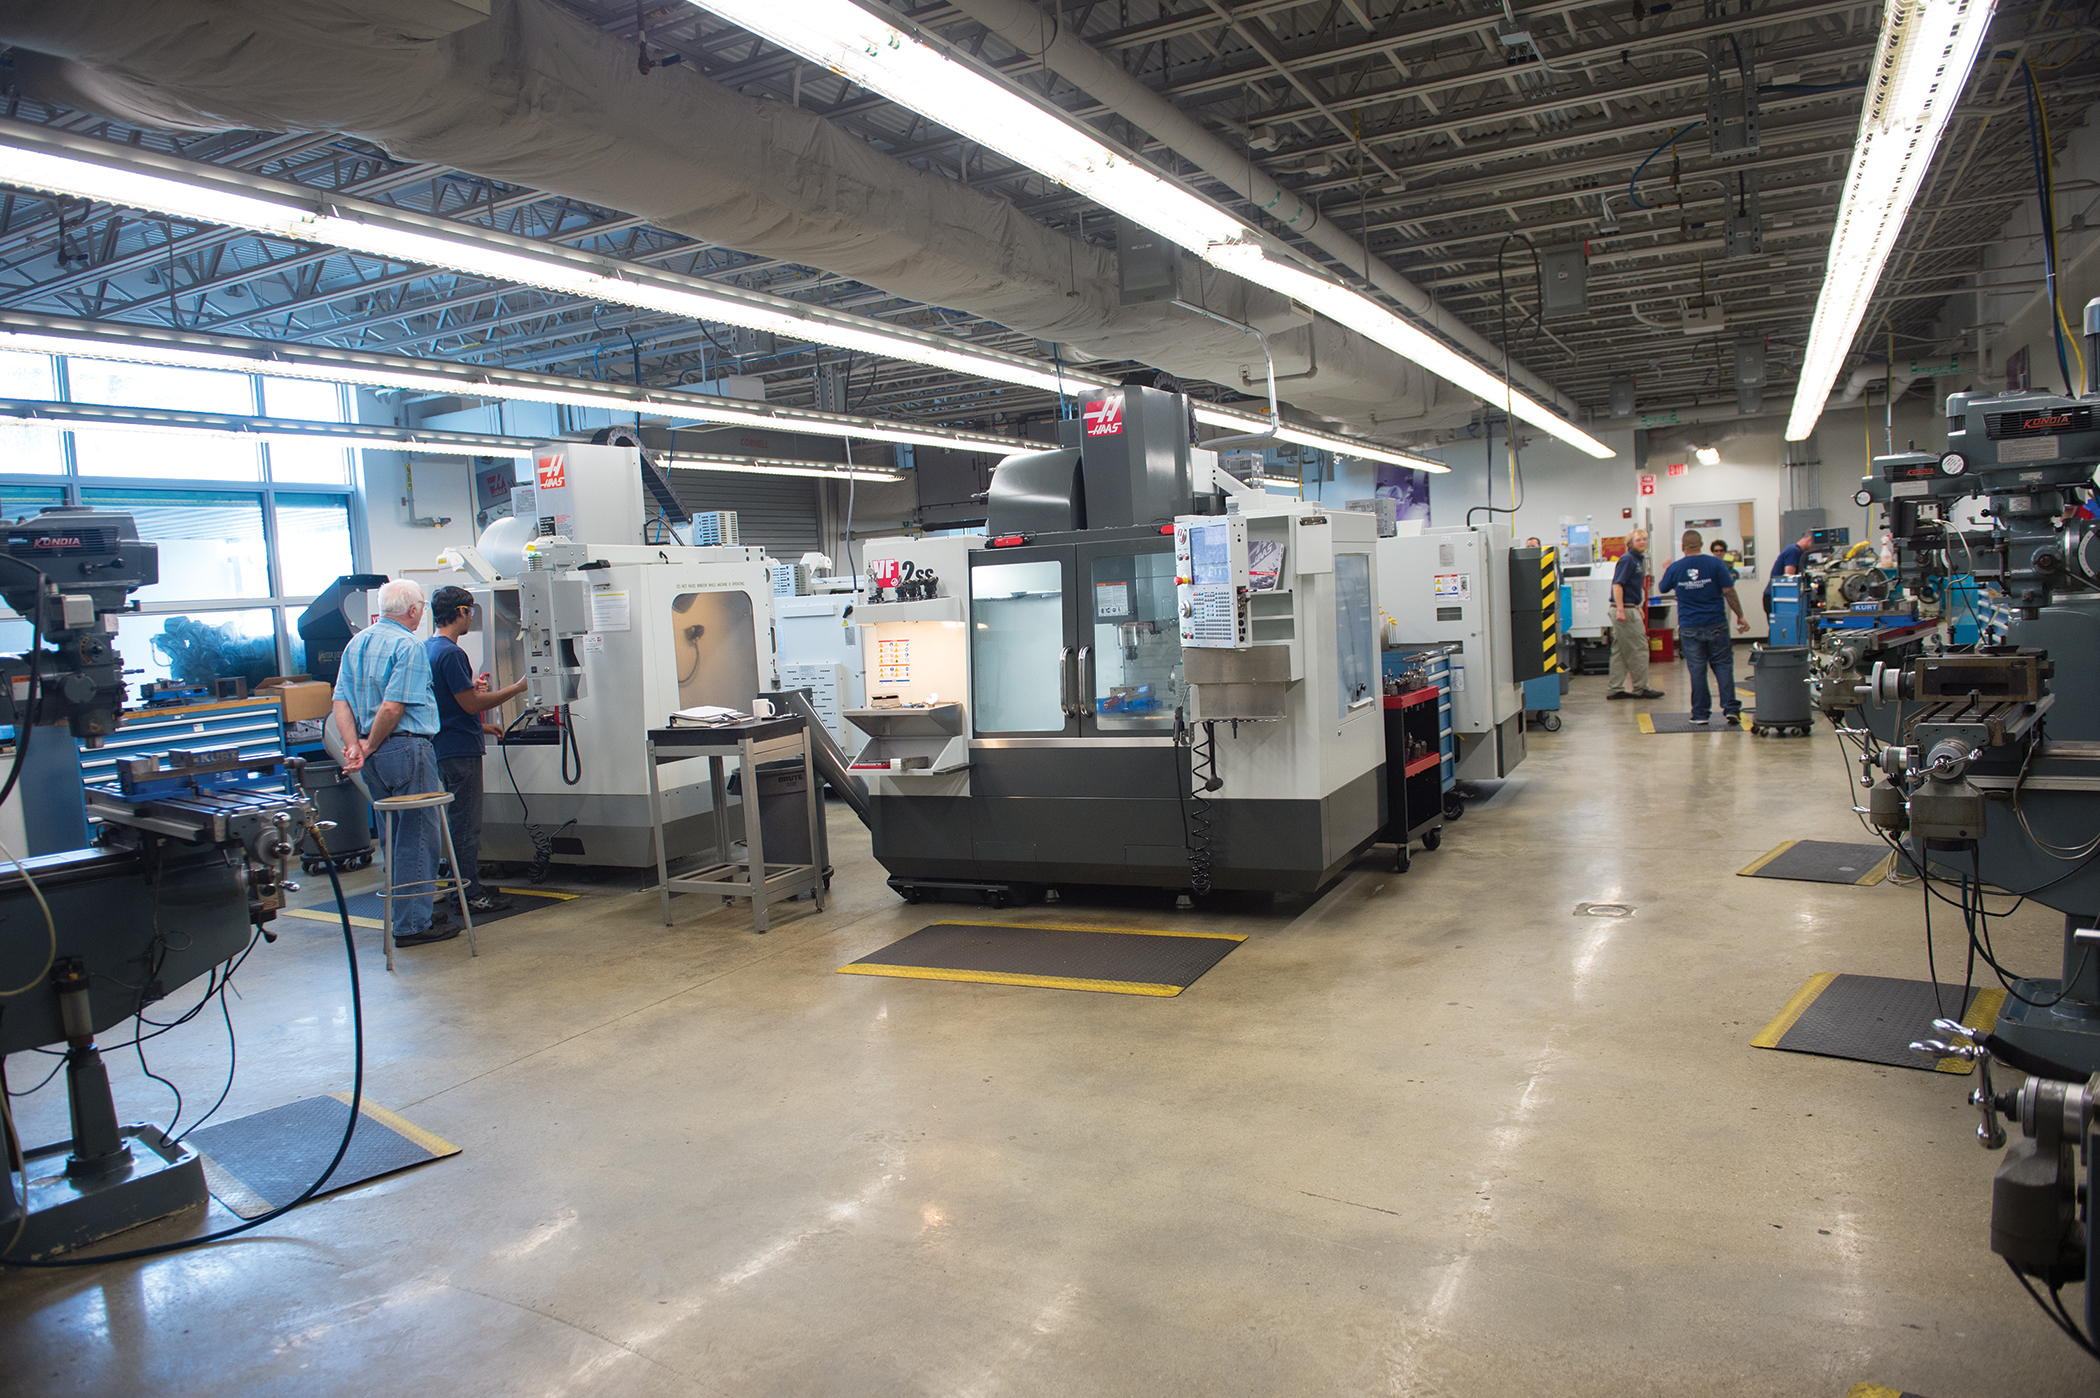 Machining lab in the Education & Training Center on the Lake Worth campus